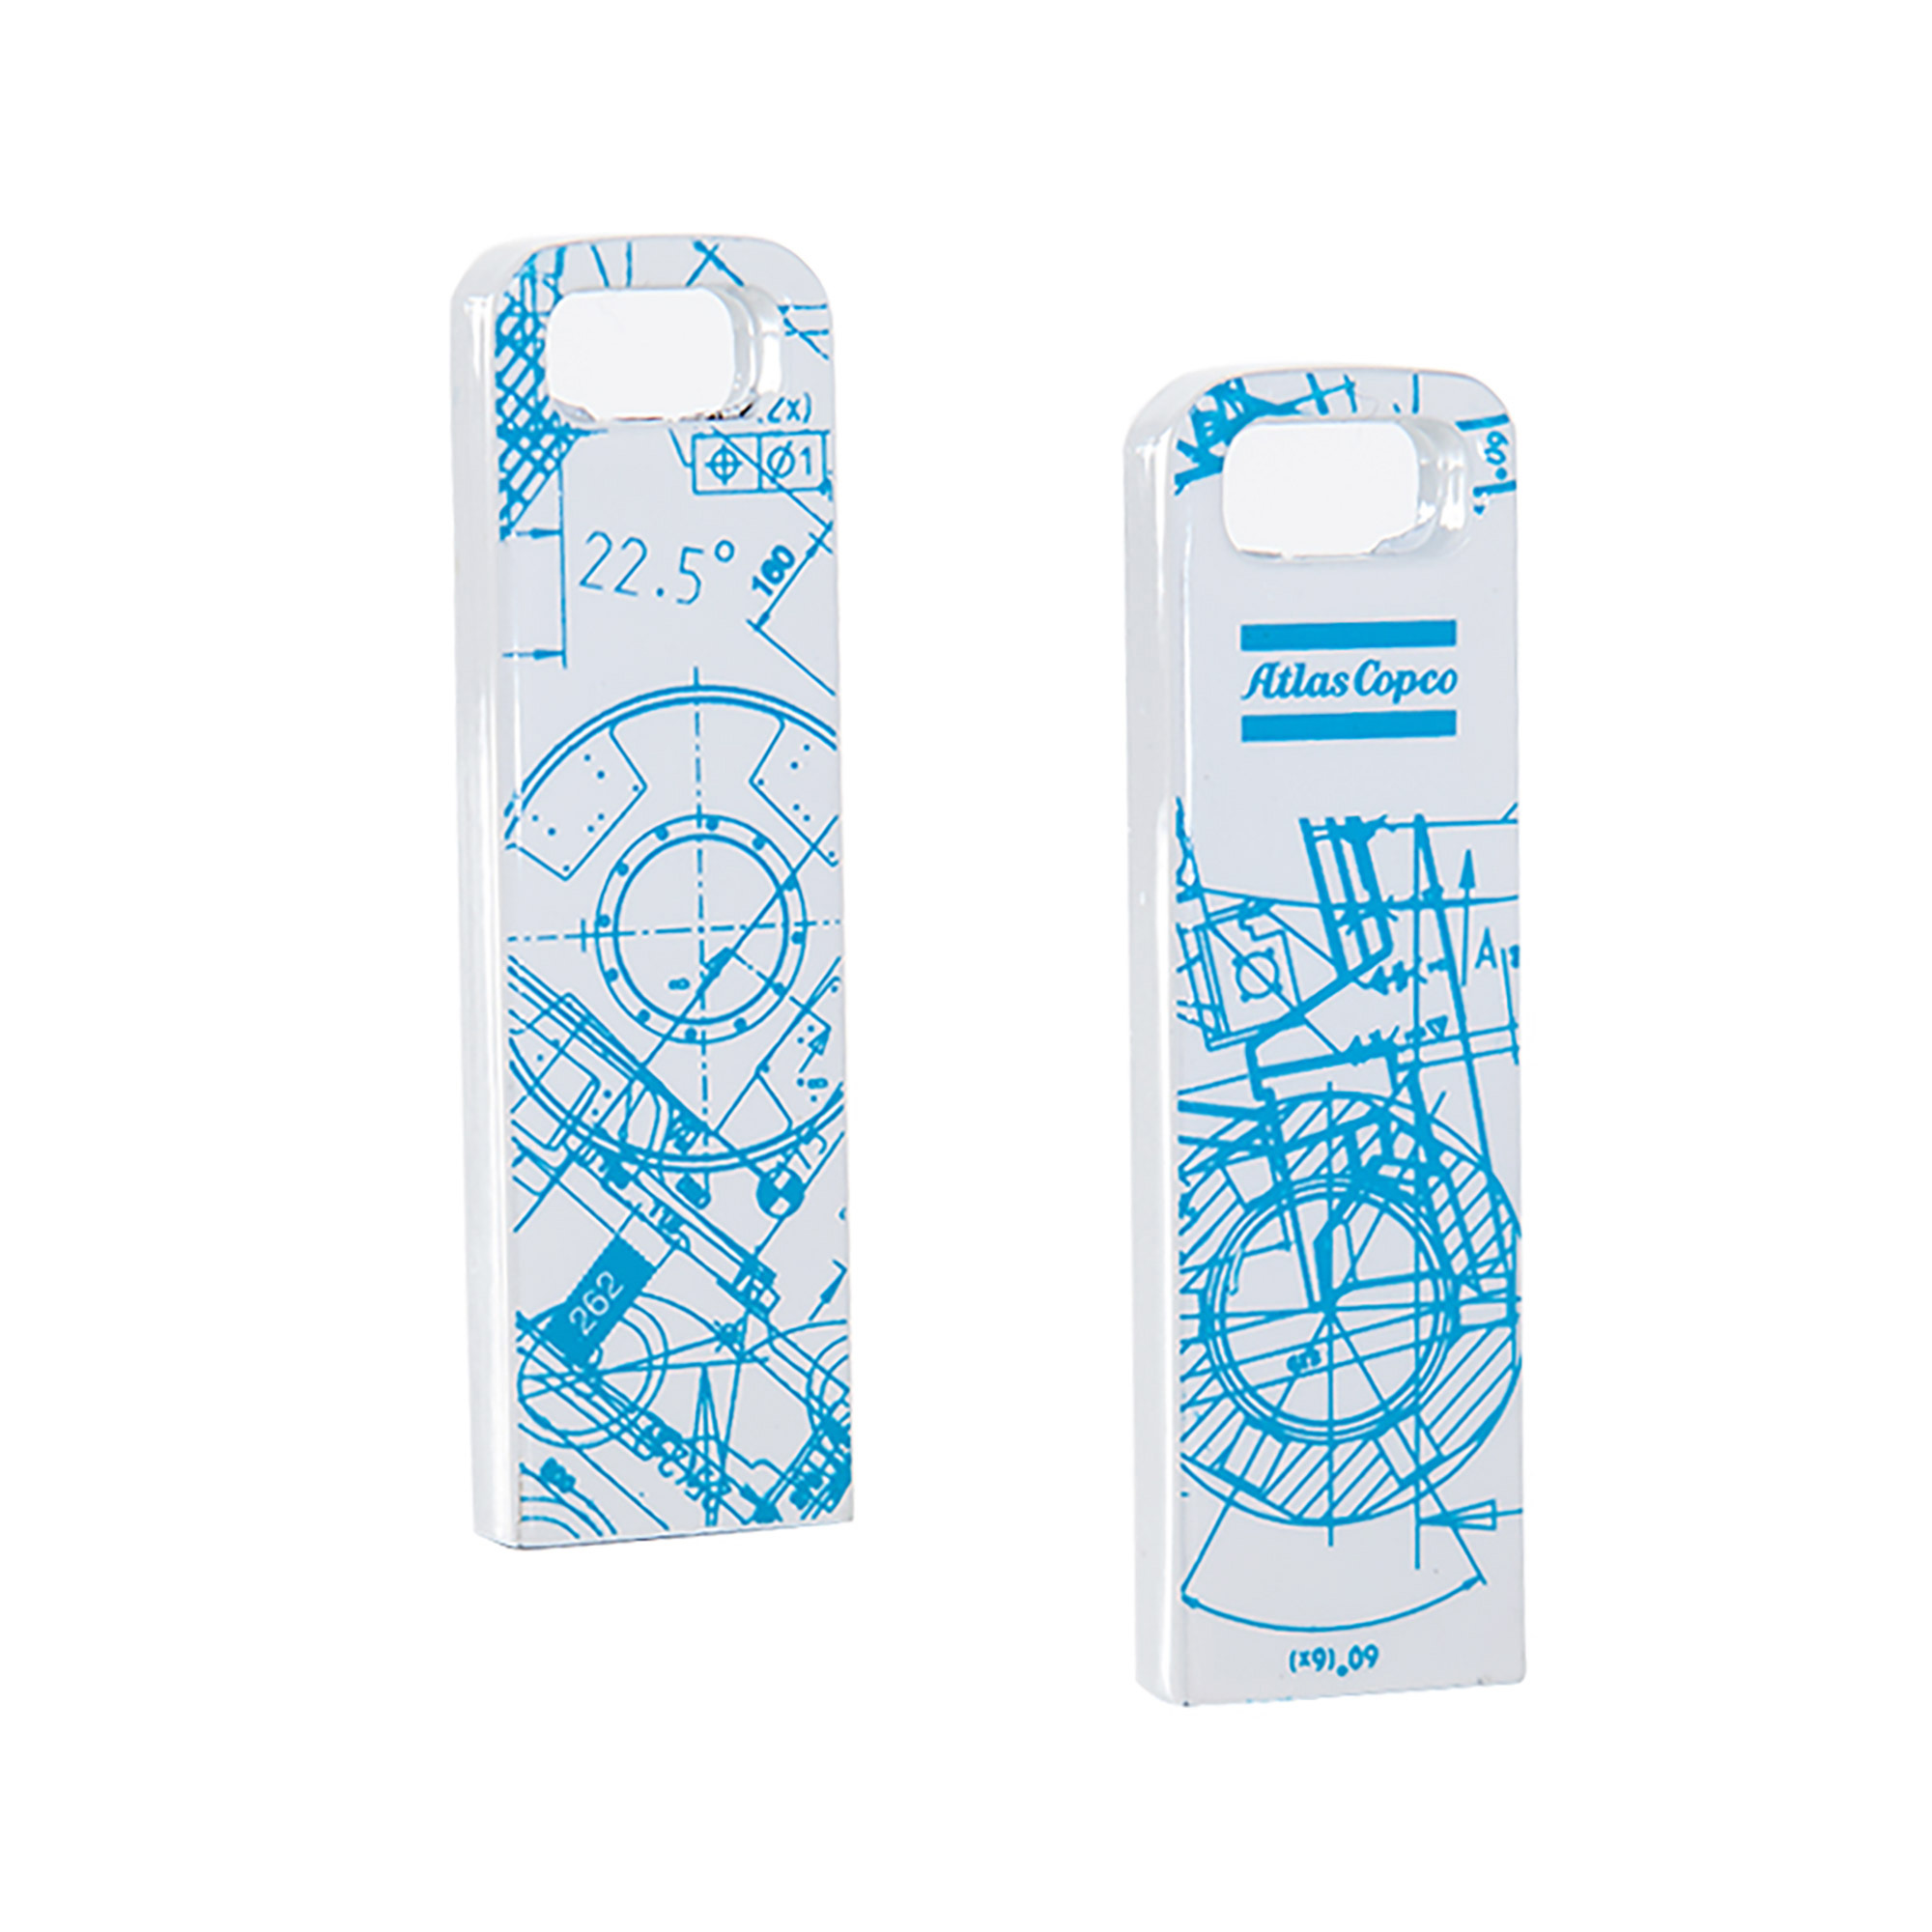 <p>This small USB helps you store and move your files, pictures and documents in style. The BluePrint pattern is based on Atlas Copco´s key innovations. By merging original blueprints from all business areas, a unique graphic pattern has been created.</p>